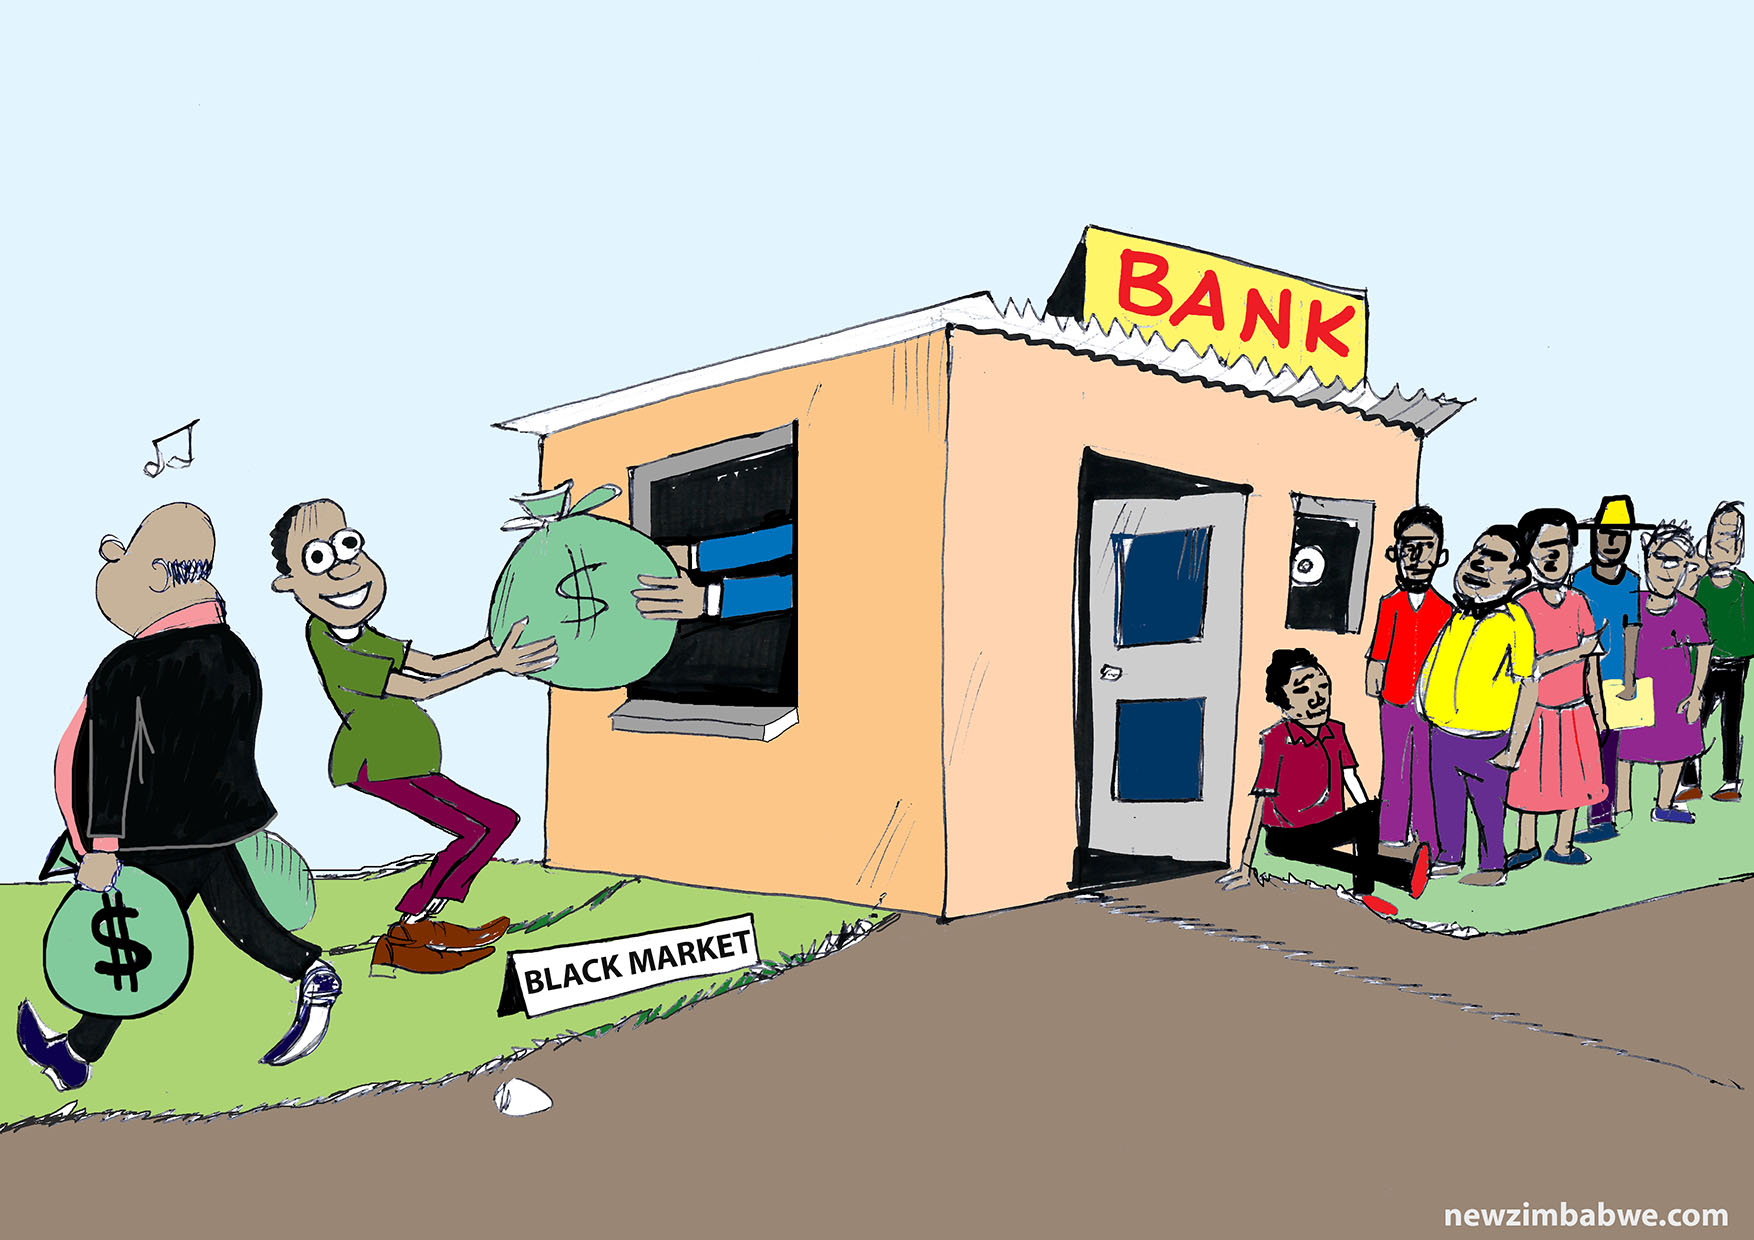 Of long bank queues and cash barons